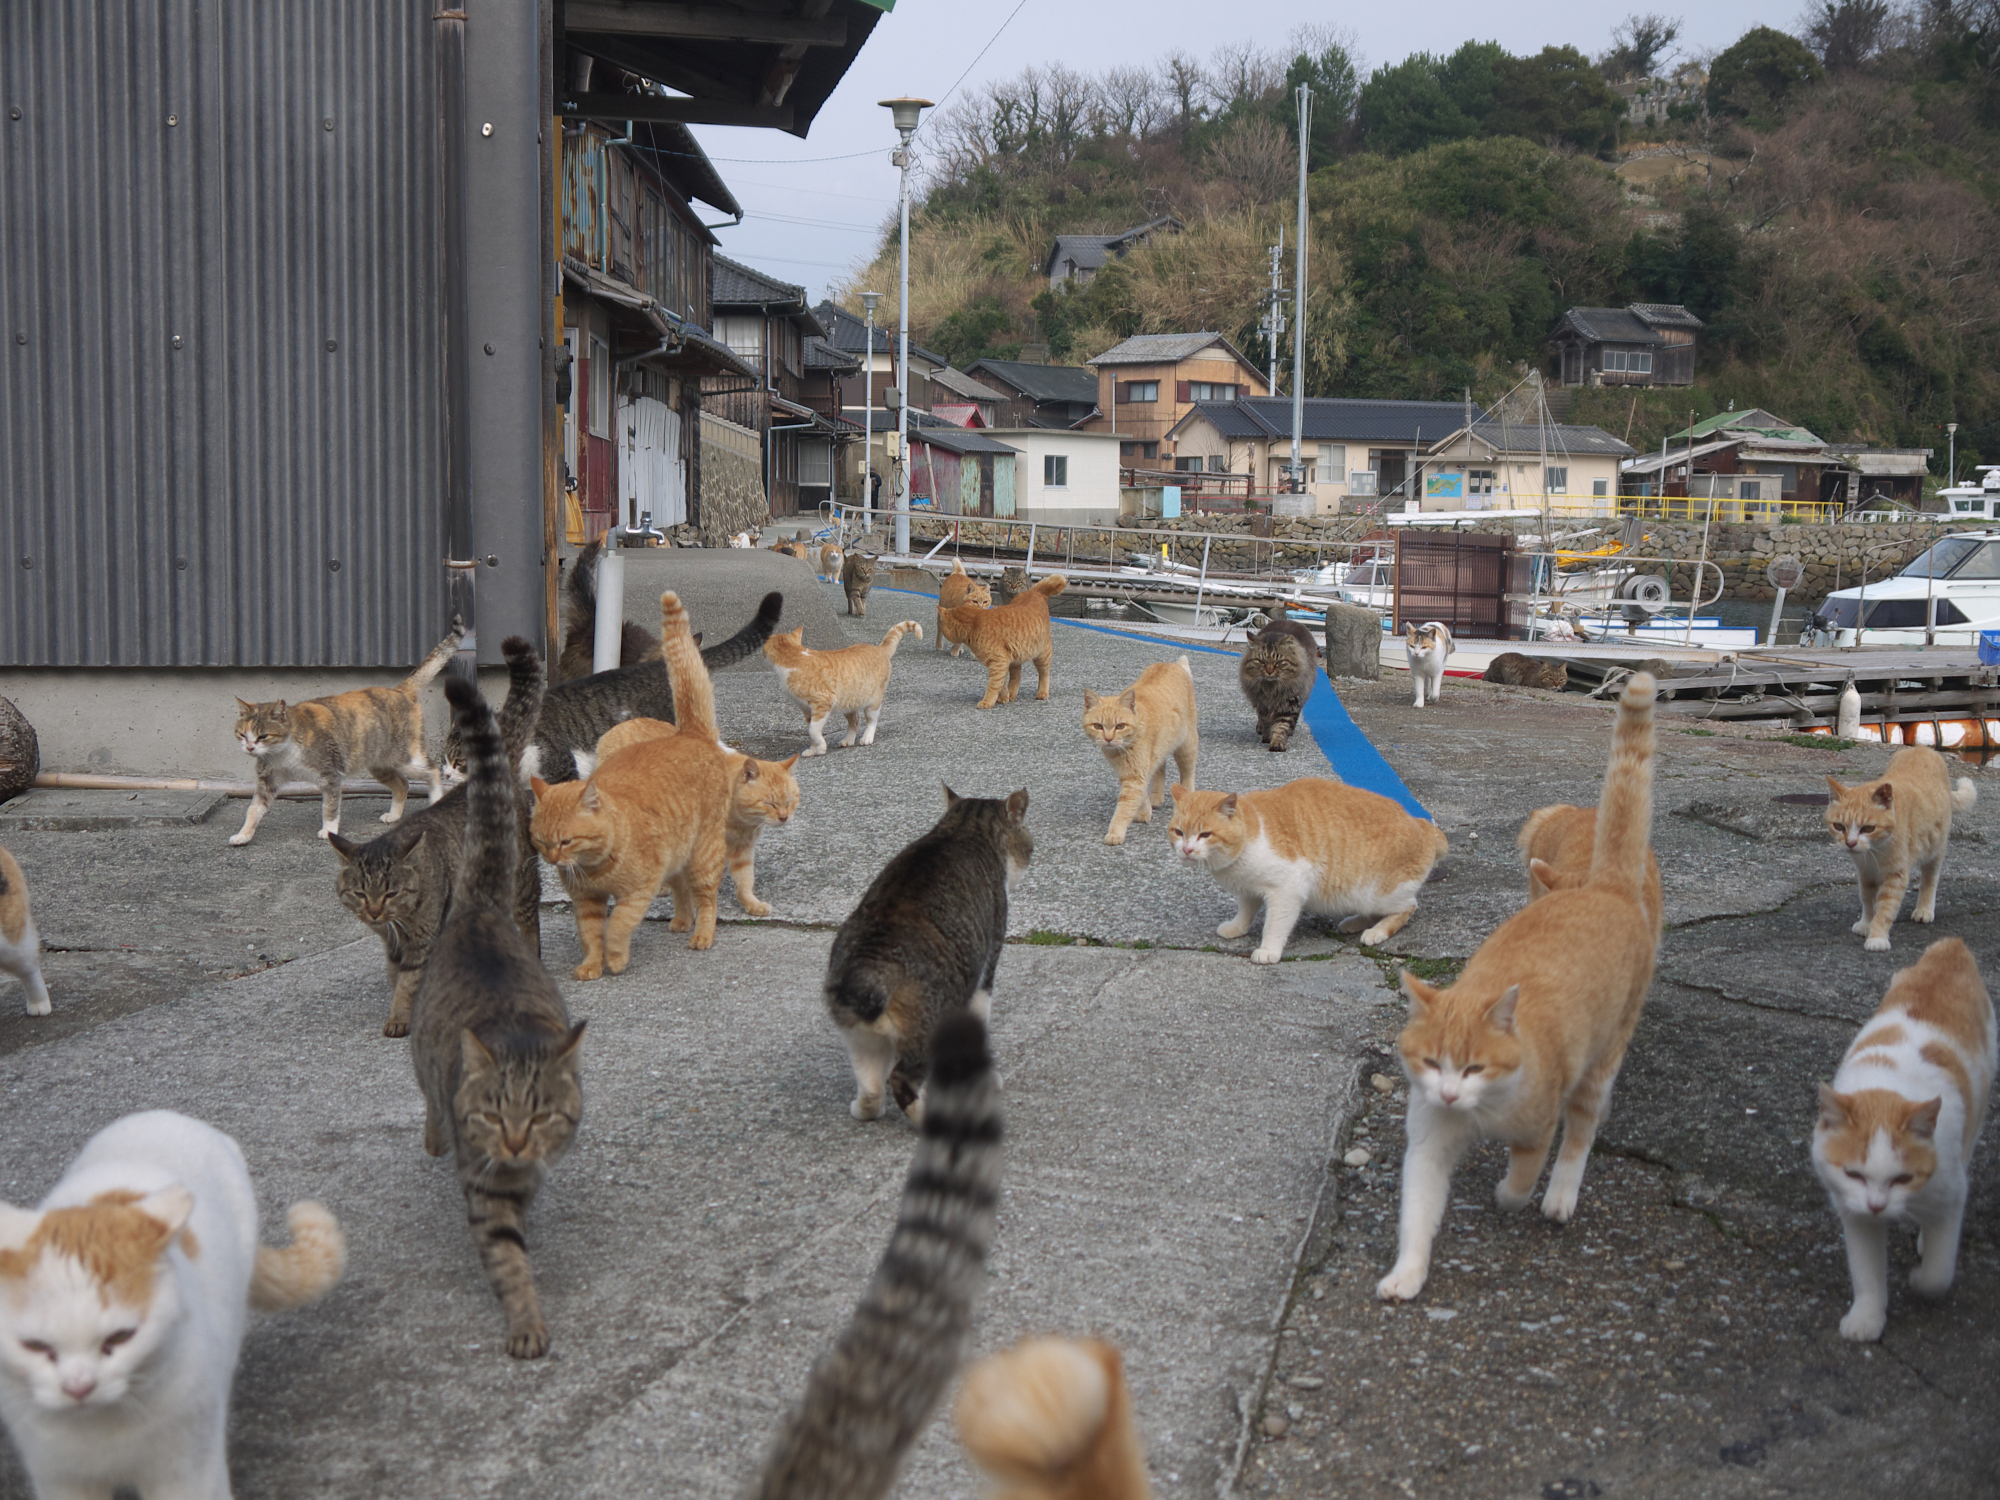 The 22nd of February is Neko No Hi (cats' day) in Japan, and some prestigious Japanese companies — including Sharp Corp. and Tanita  Corp. — have surprised the public by rebranding themselves on a feline theme to capture the heart of cat-loving potential customers. | GETTY IMAGES